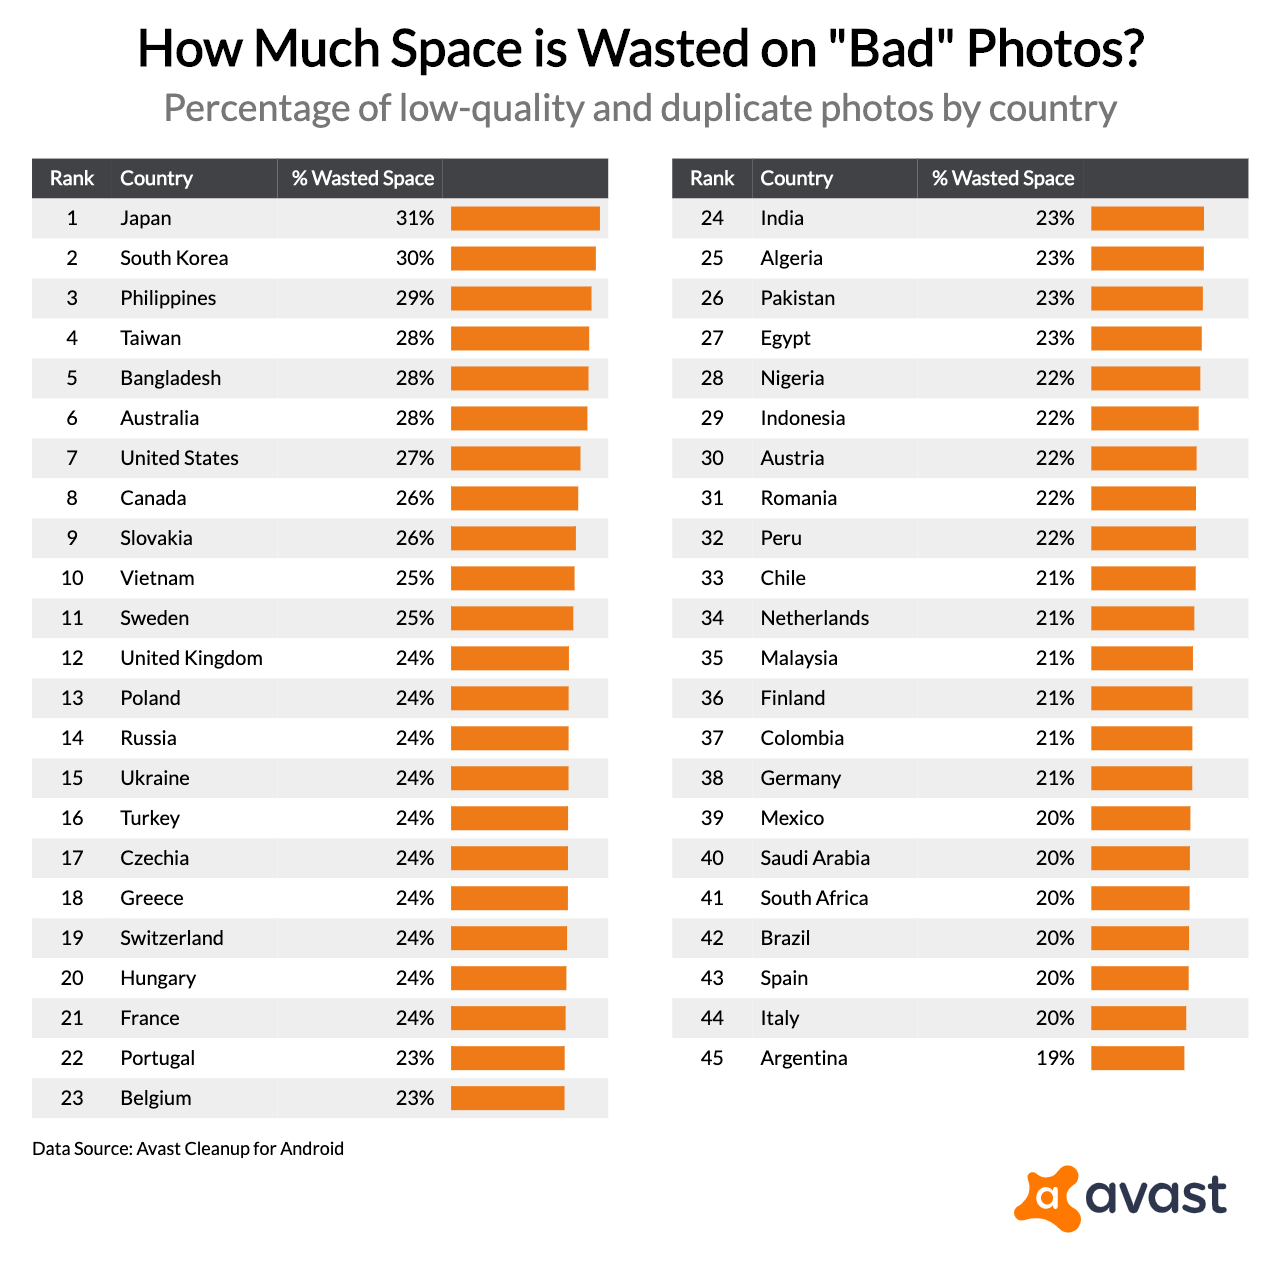 how-much-space-is-wasted-on-bad-photos_2019-09-26T21_18_28.617Z